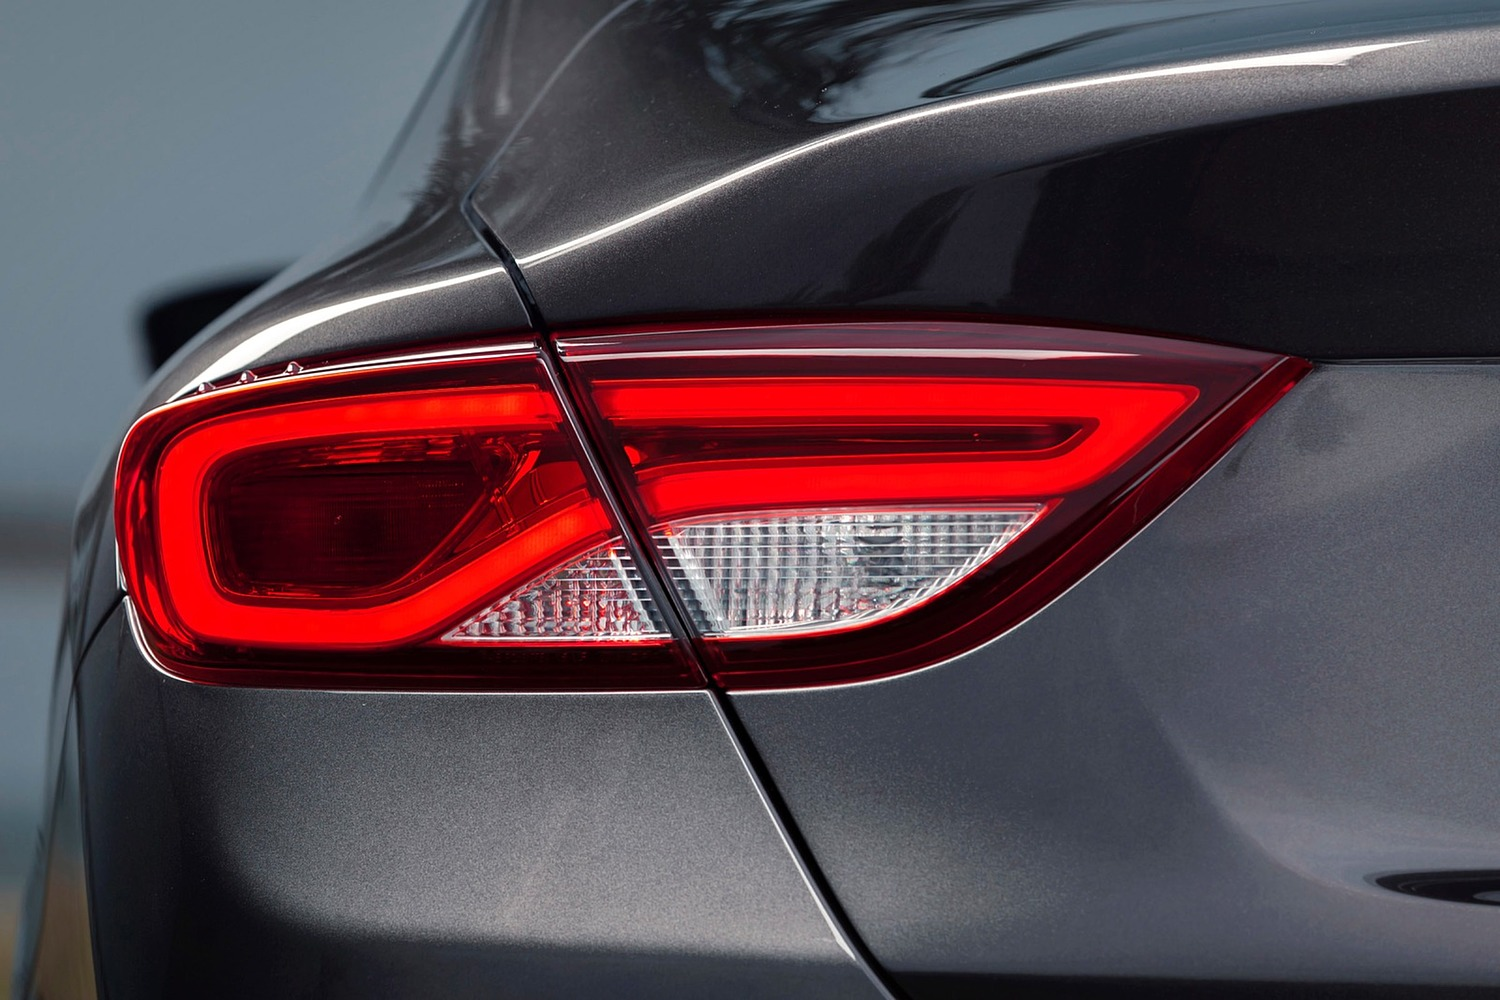 Chrysler 200 C Sedan Taillamp Detail (2015 model year shown)